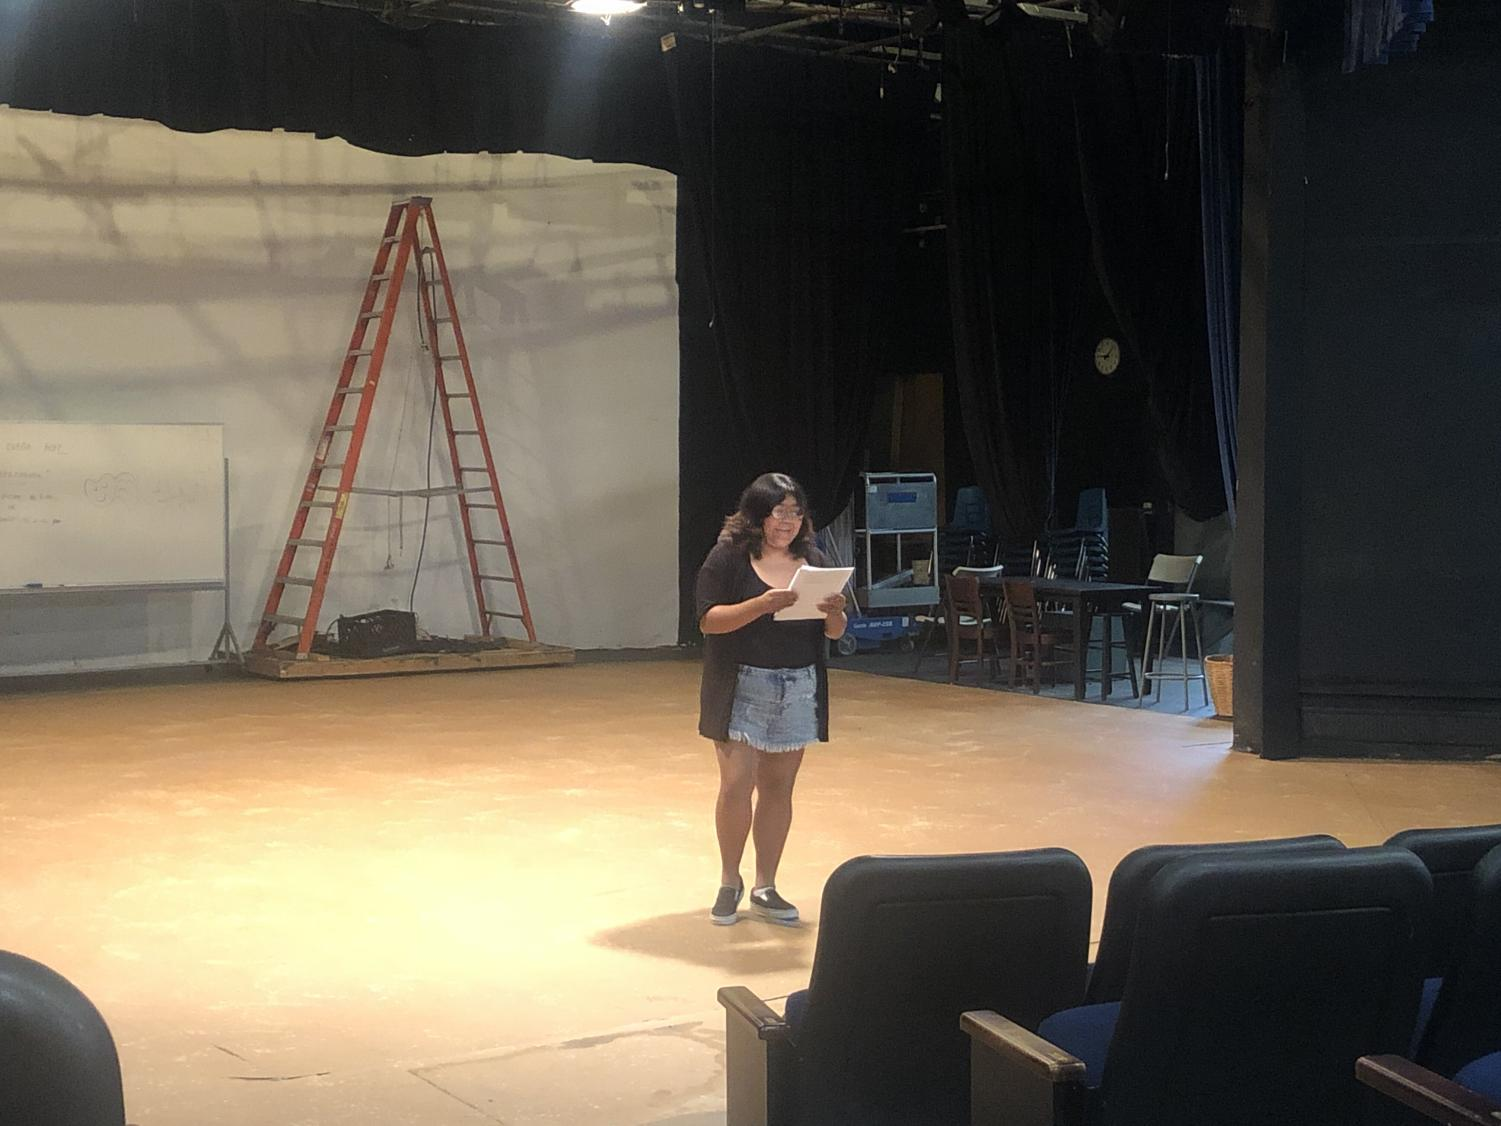 Lizeth De La Luz, 21-year-old English major, auditioning to take part of the upcoming Mesa College production of